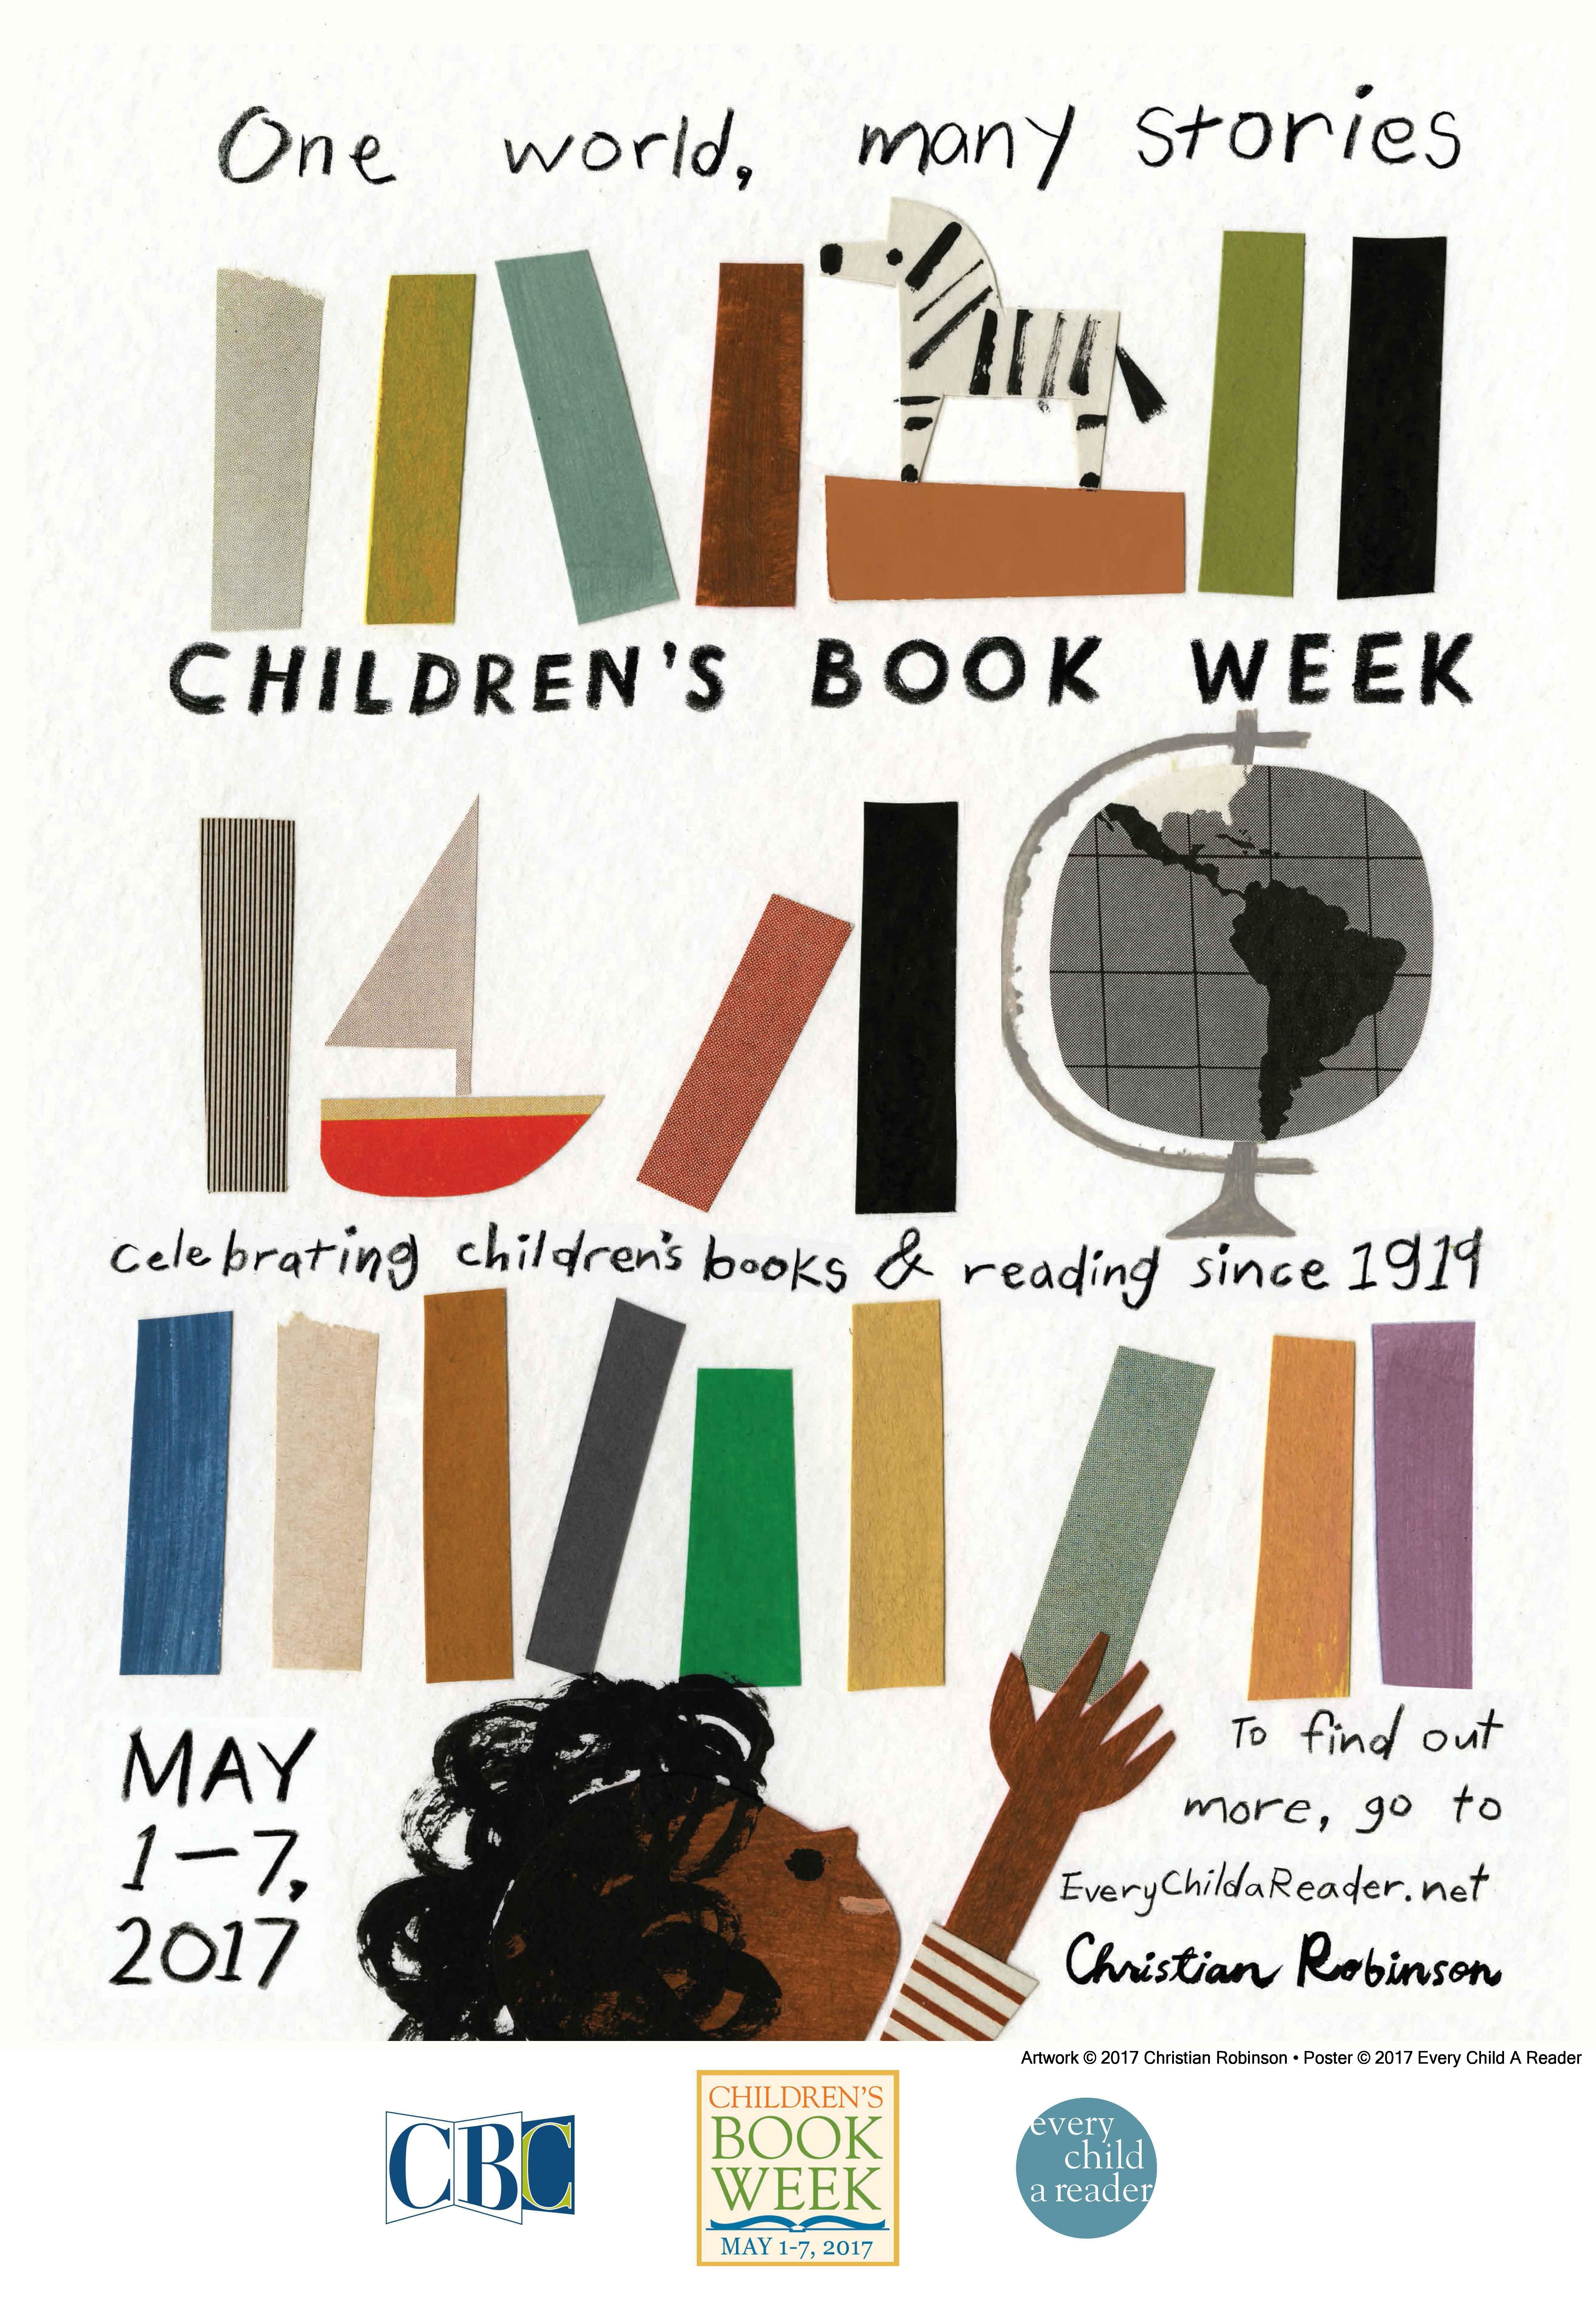 2017 Children's Book Week Poster Revealed; Event Location Online  Signup Now Open